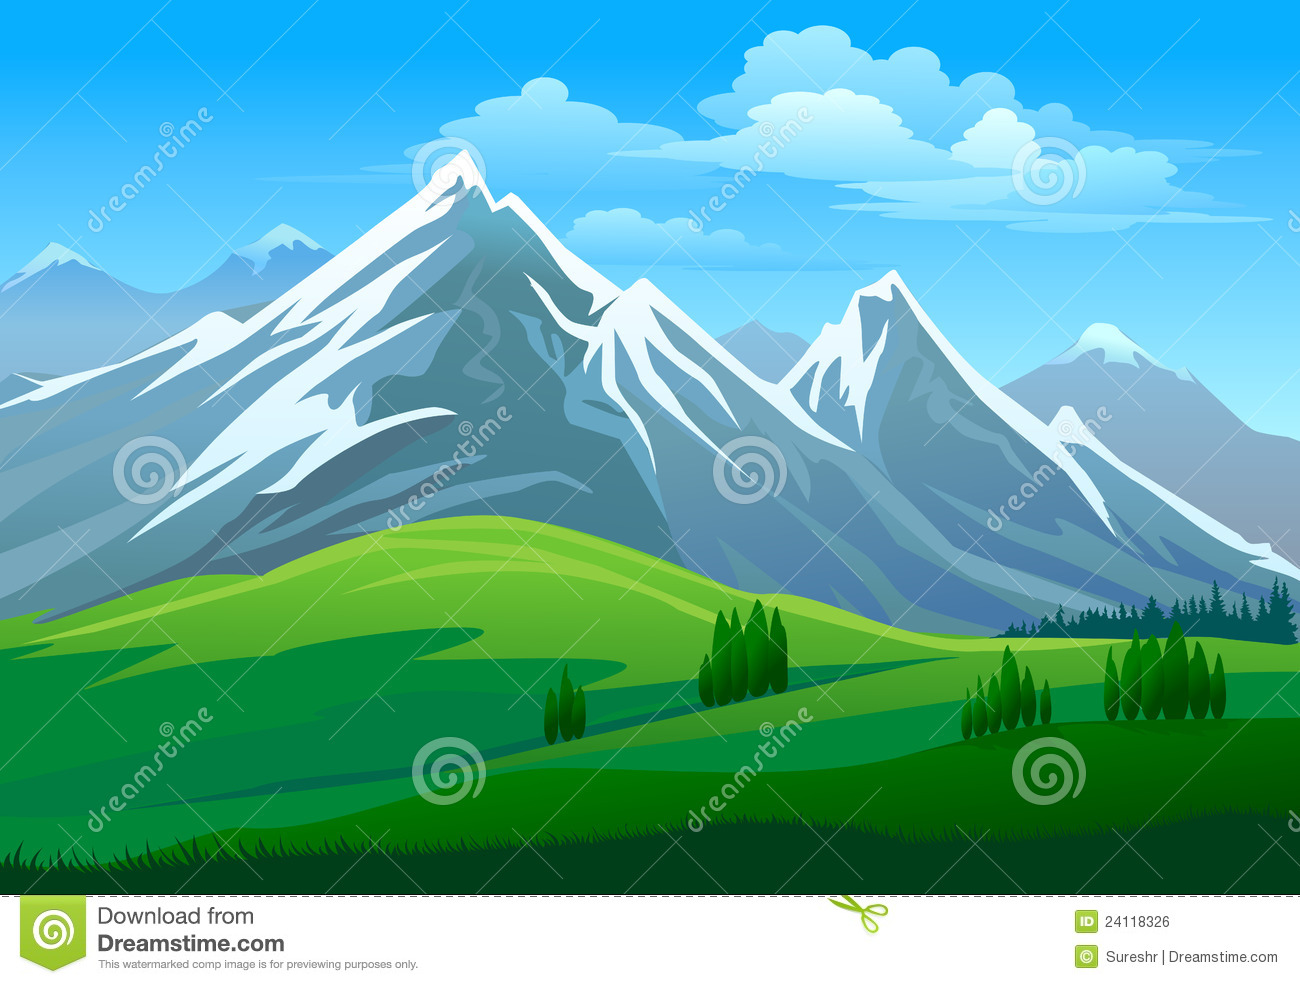 royalty free library Hills and mountains rating. Valley clipart definition.